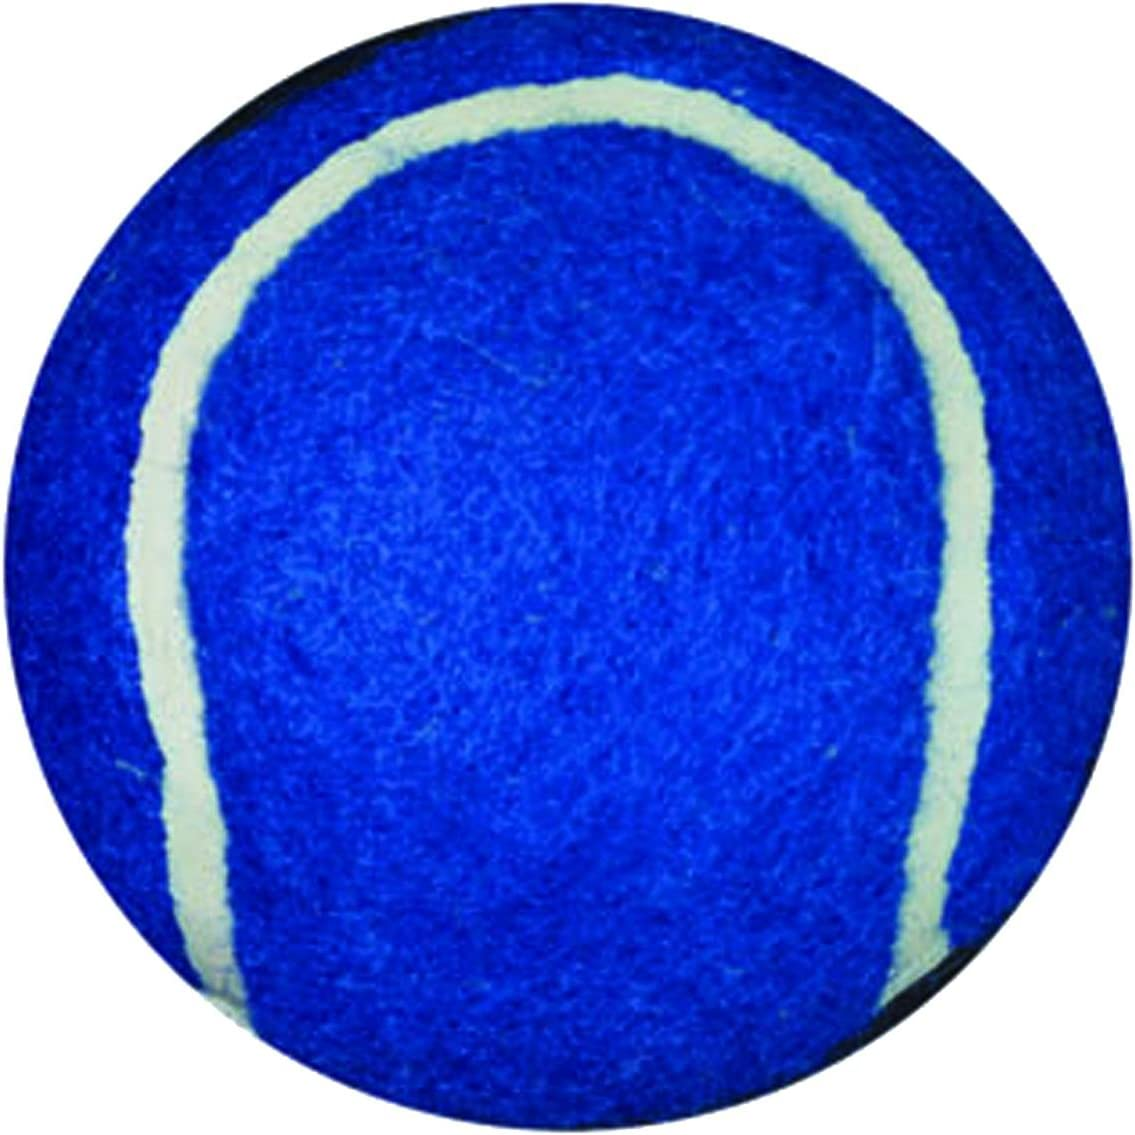 PNC400007 Large discharge sale - Limited Special Price Pre-Cut Walkerball Blue Dark